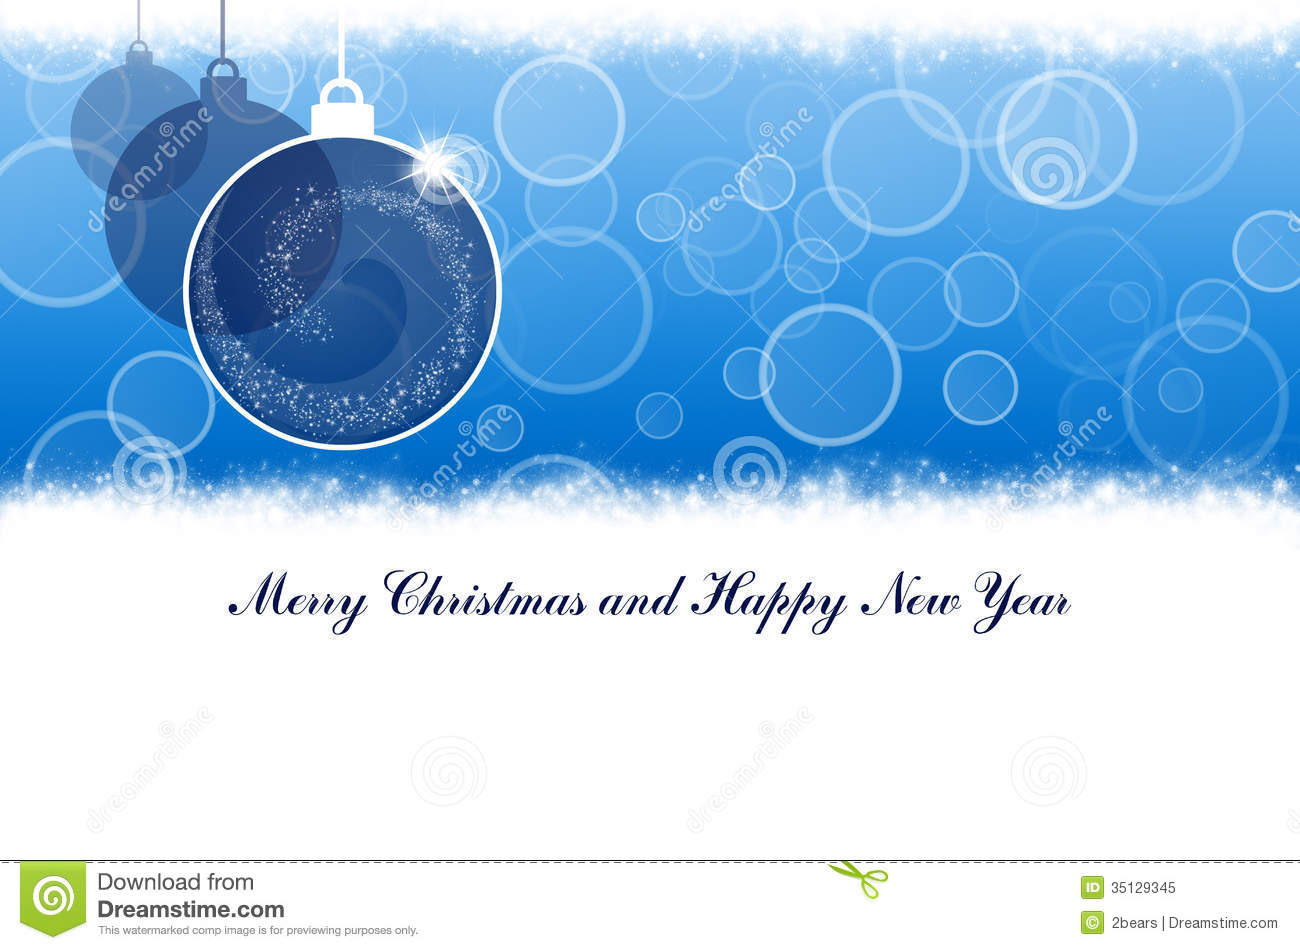 merry christmas and happy new year blue background with balls